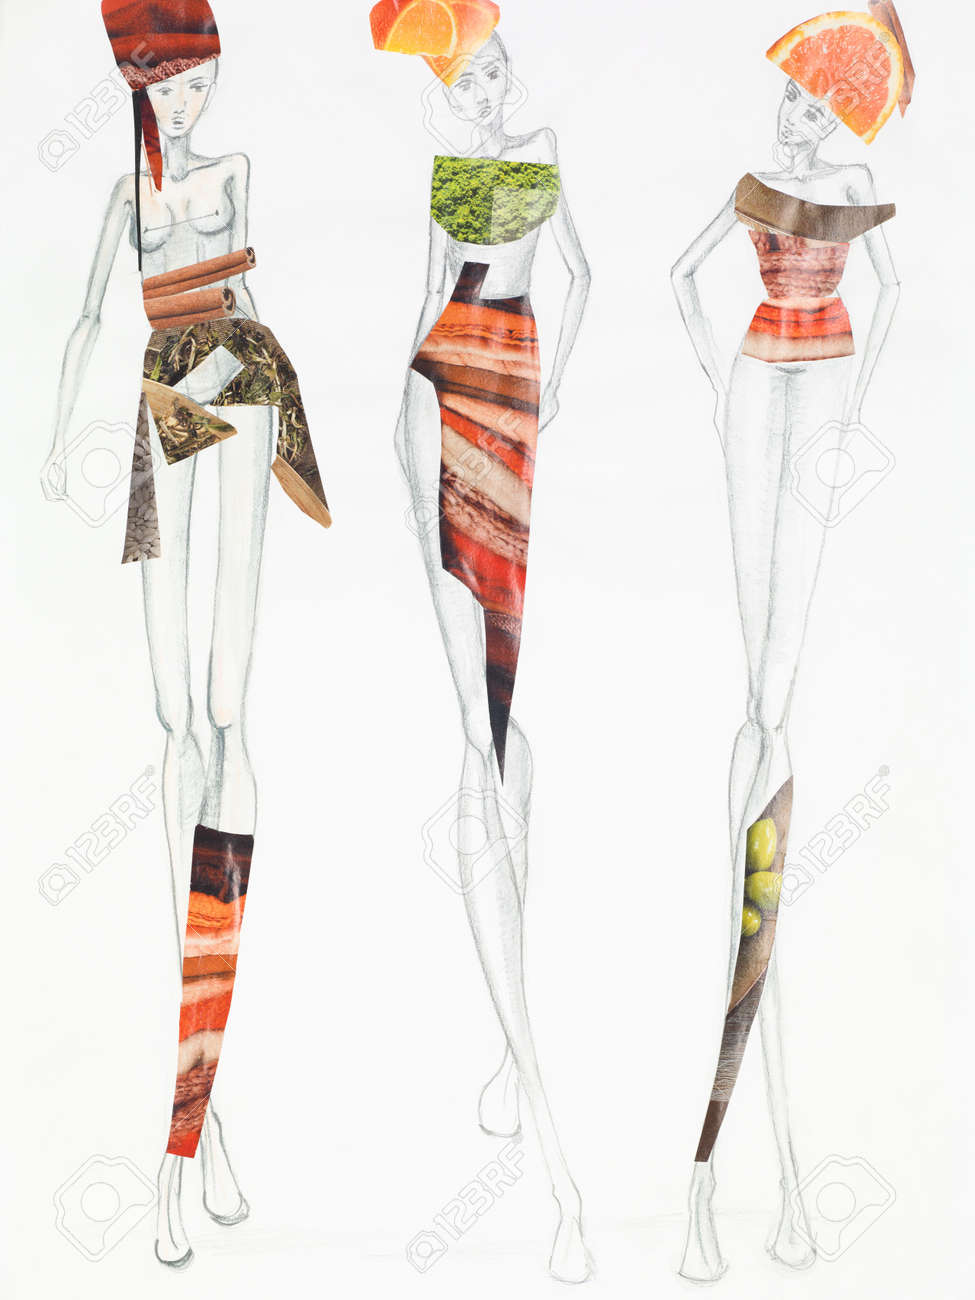 Pencil sketch with models wearing clothing made out of fruits and patterns cutout from magazines